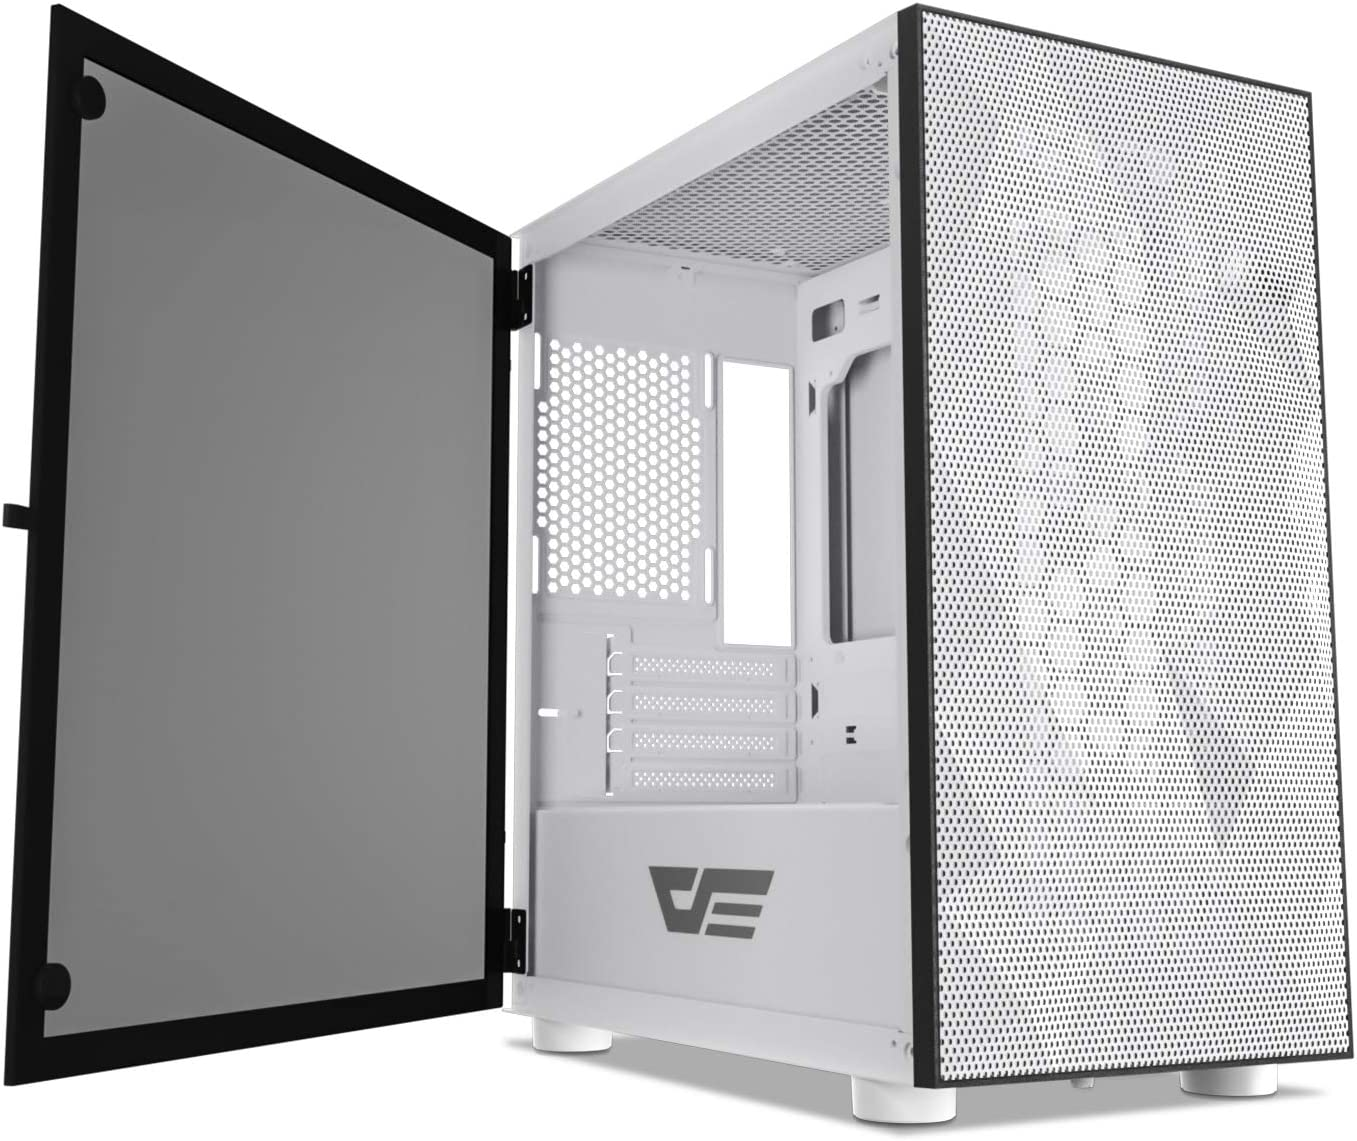 darkFlash DLM21 MESH Micro ATX Mini ITX Tower MicroATX White Computer Case with Door Opening Tempered Glass Side Panel & Mesh Front Panel